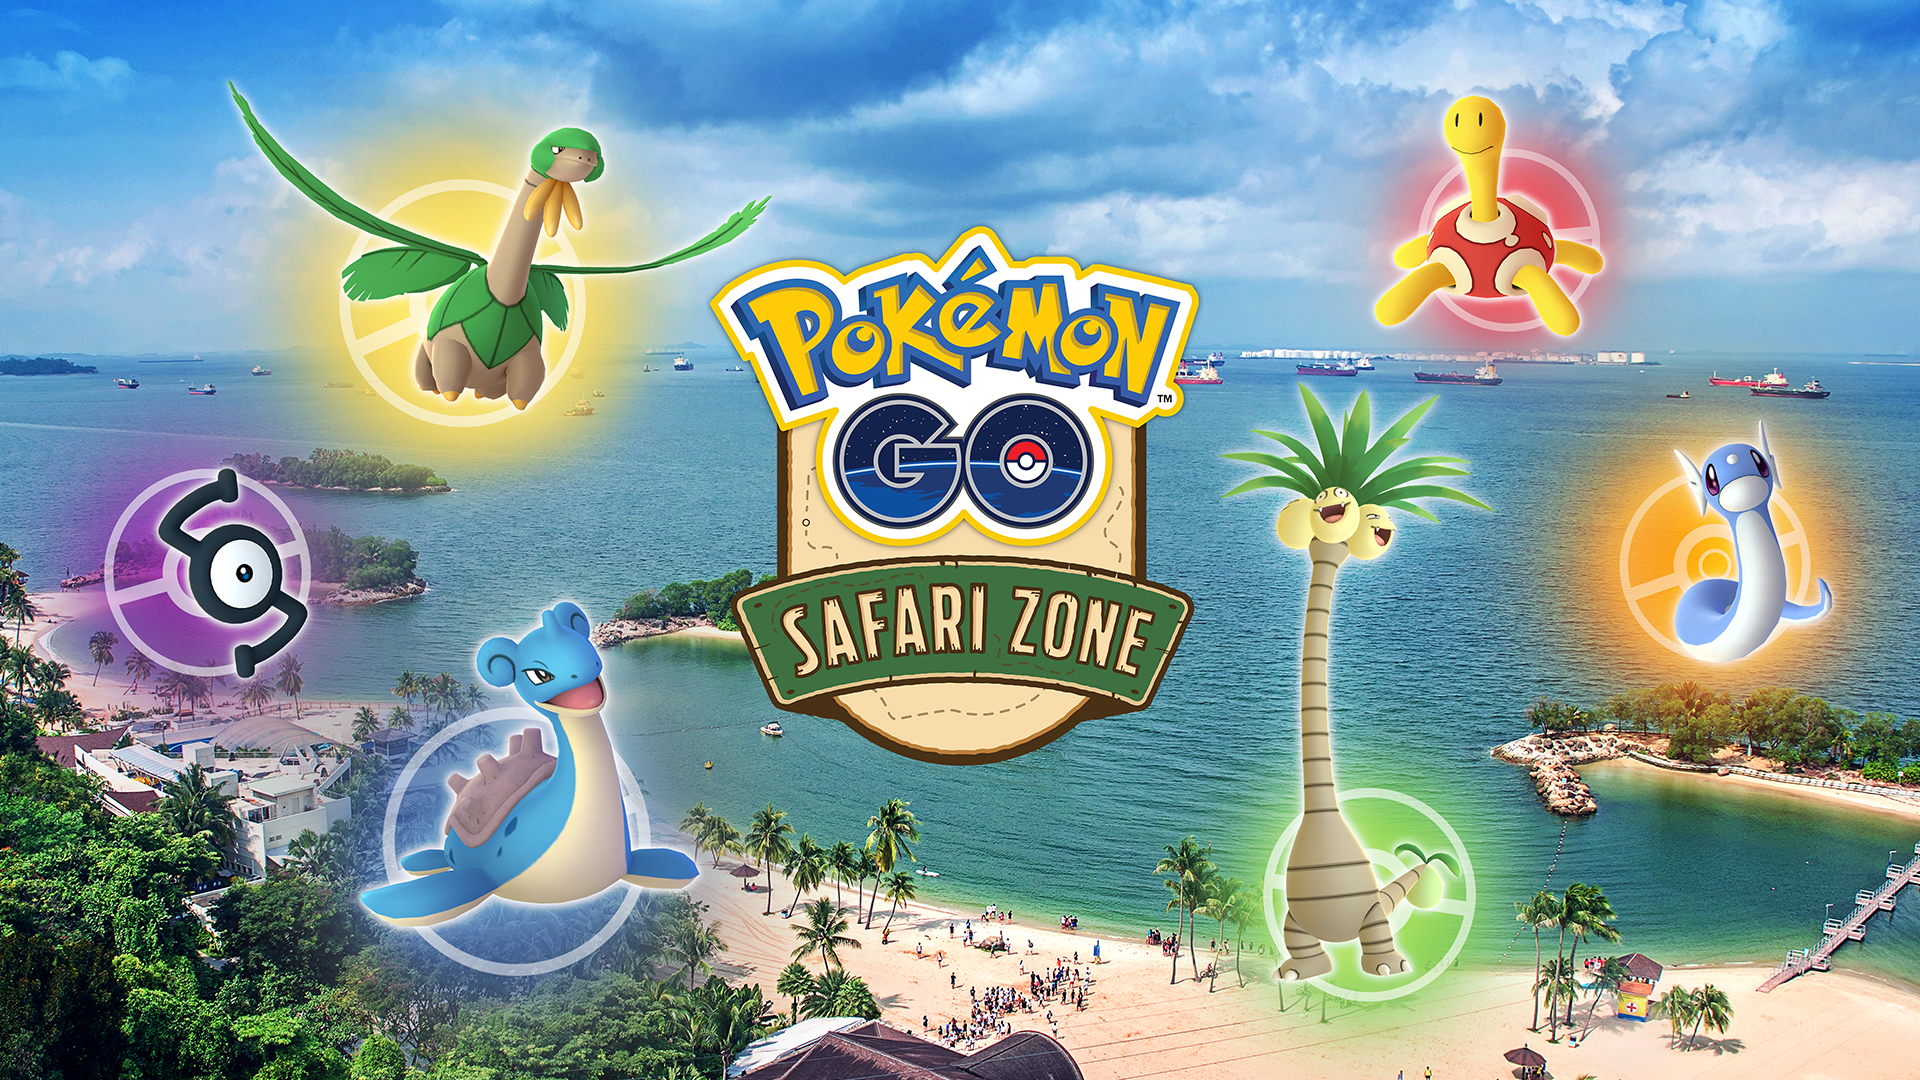 Pokémon GO Safari Zone at Sentosa - Pokémon GO